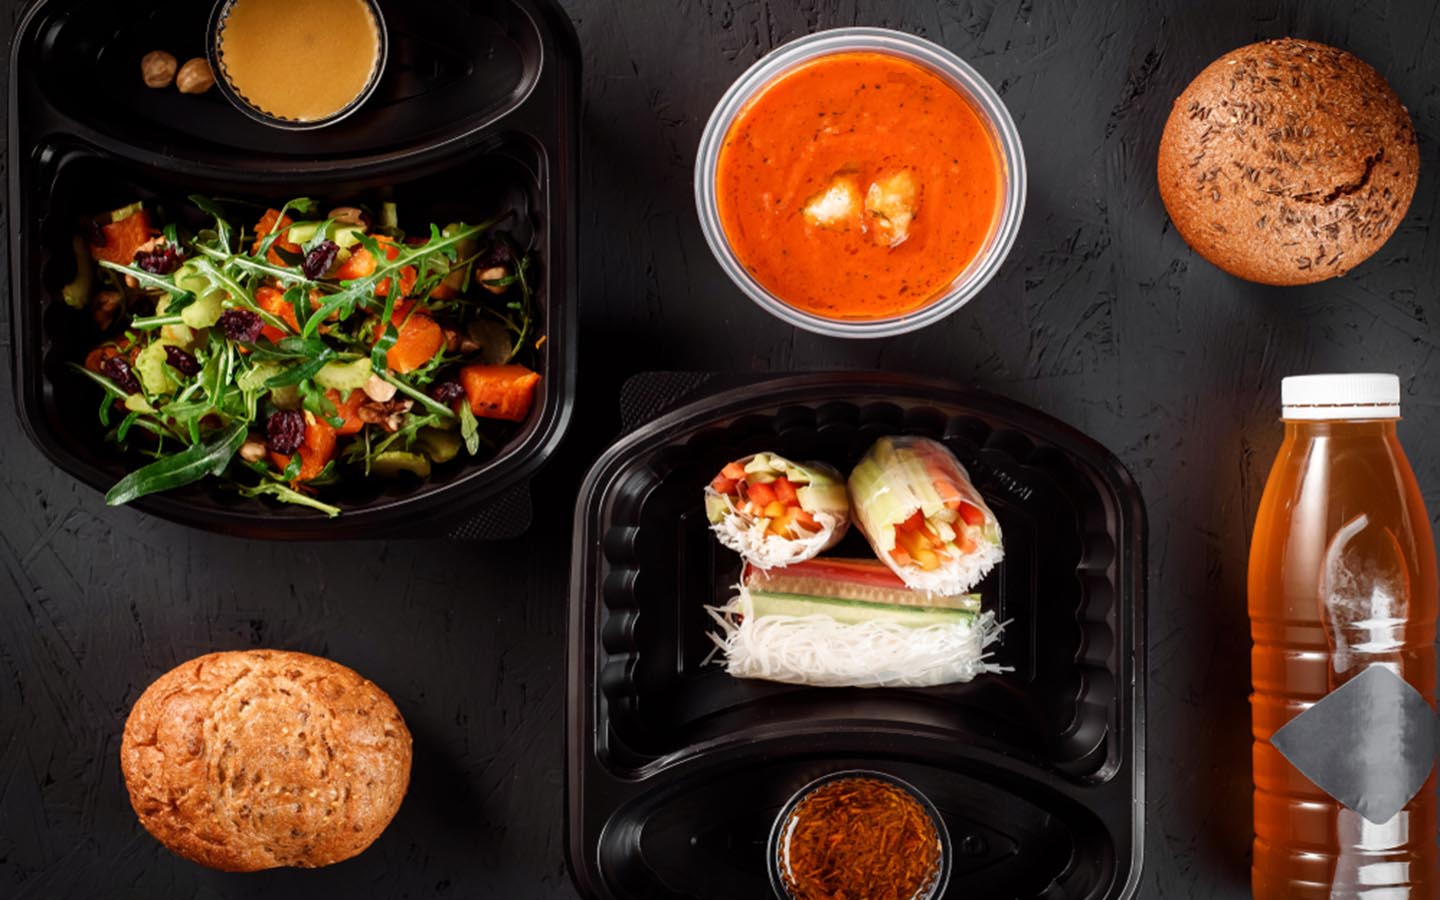 Juices, meal boxes and soup